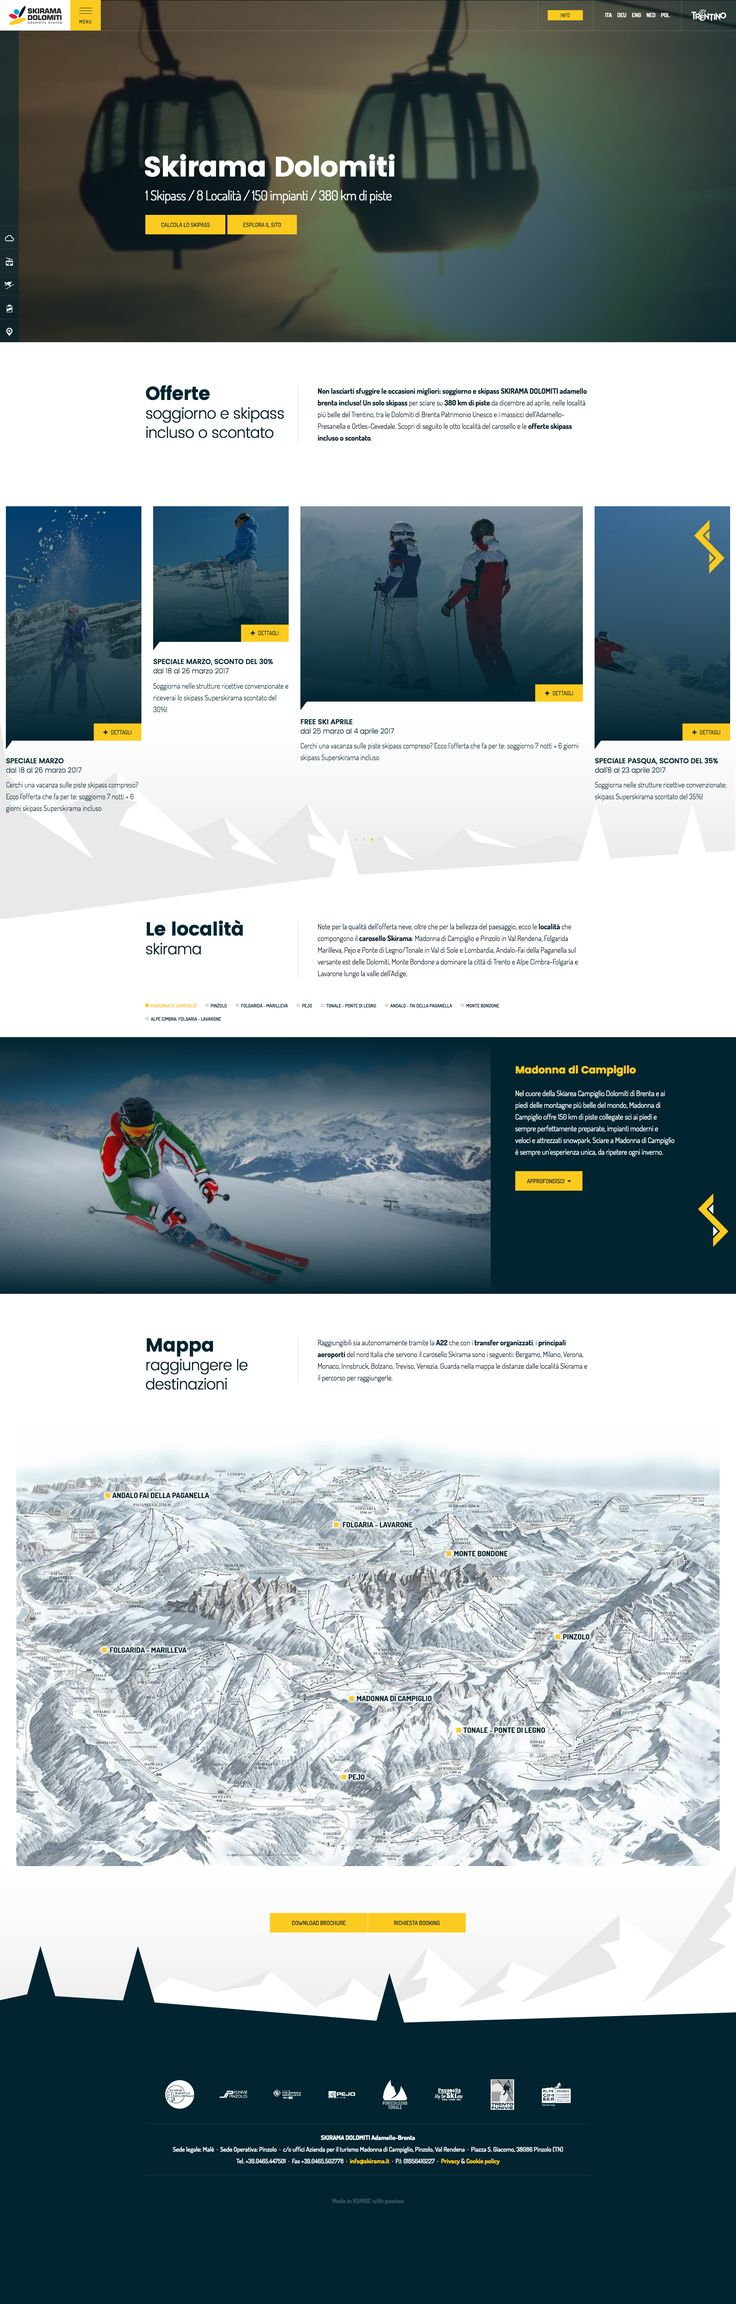 #skiramadolomiti www.skirama.it #Kumbe #portfolioweb #webdesign #website #responsivedesign #responsive #new #sci #ski #snow #snowboard #sun #fun #love #family #MadonnadiCampiglio #Pinzolo #ValRendena #Trentino #Folgarida #Marilleva #Pejo #PontediLegno #Tonale #ValdiSole #Lombardia #Andalo #FaidellaPaganella #MonteBondone #Bondone #Trento #AlpeCimbra #Folgaria #Lavarone #transfer #BrentaDolomites #Dolomiti #DolomitiDiBrenta #Turismo #skirama #natura #skipass